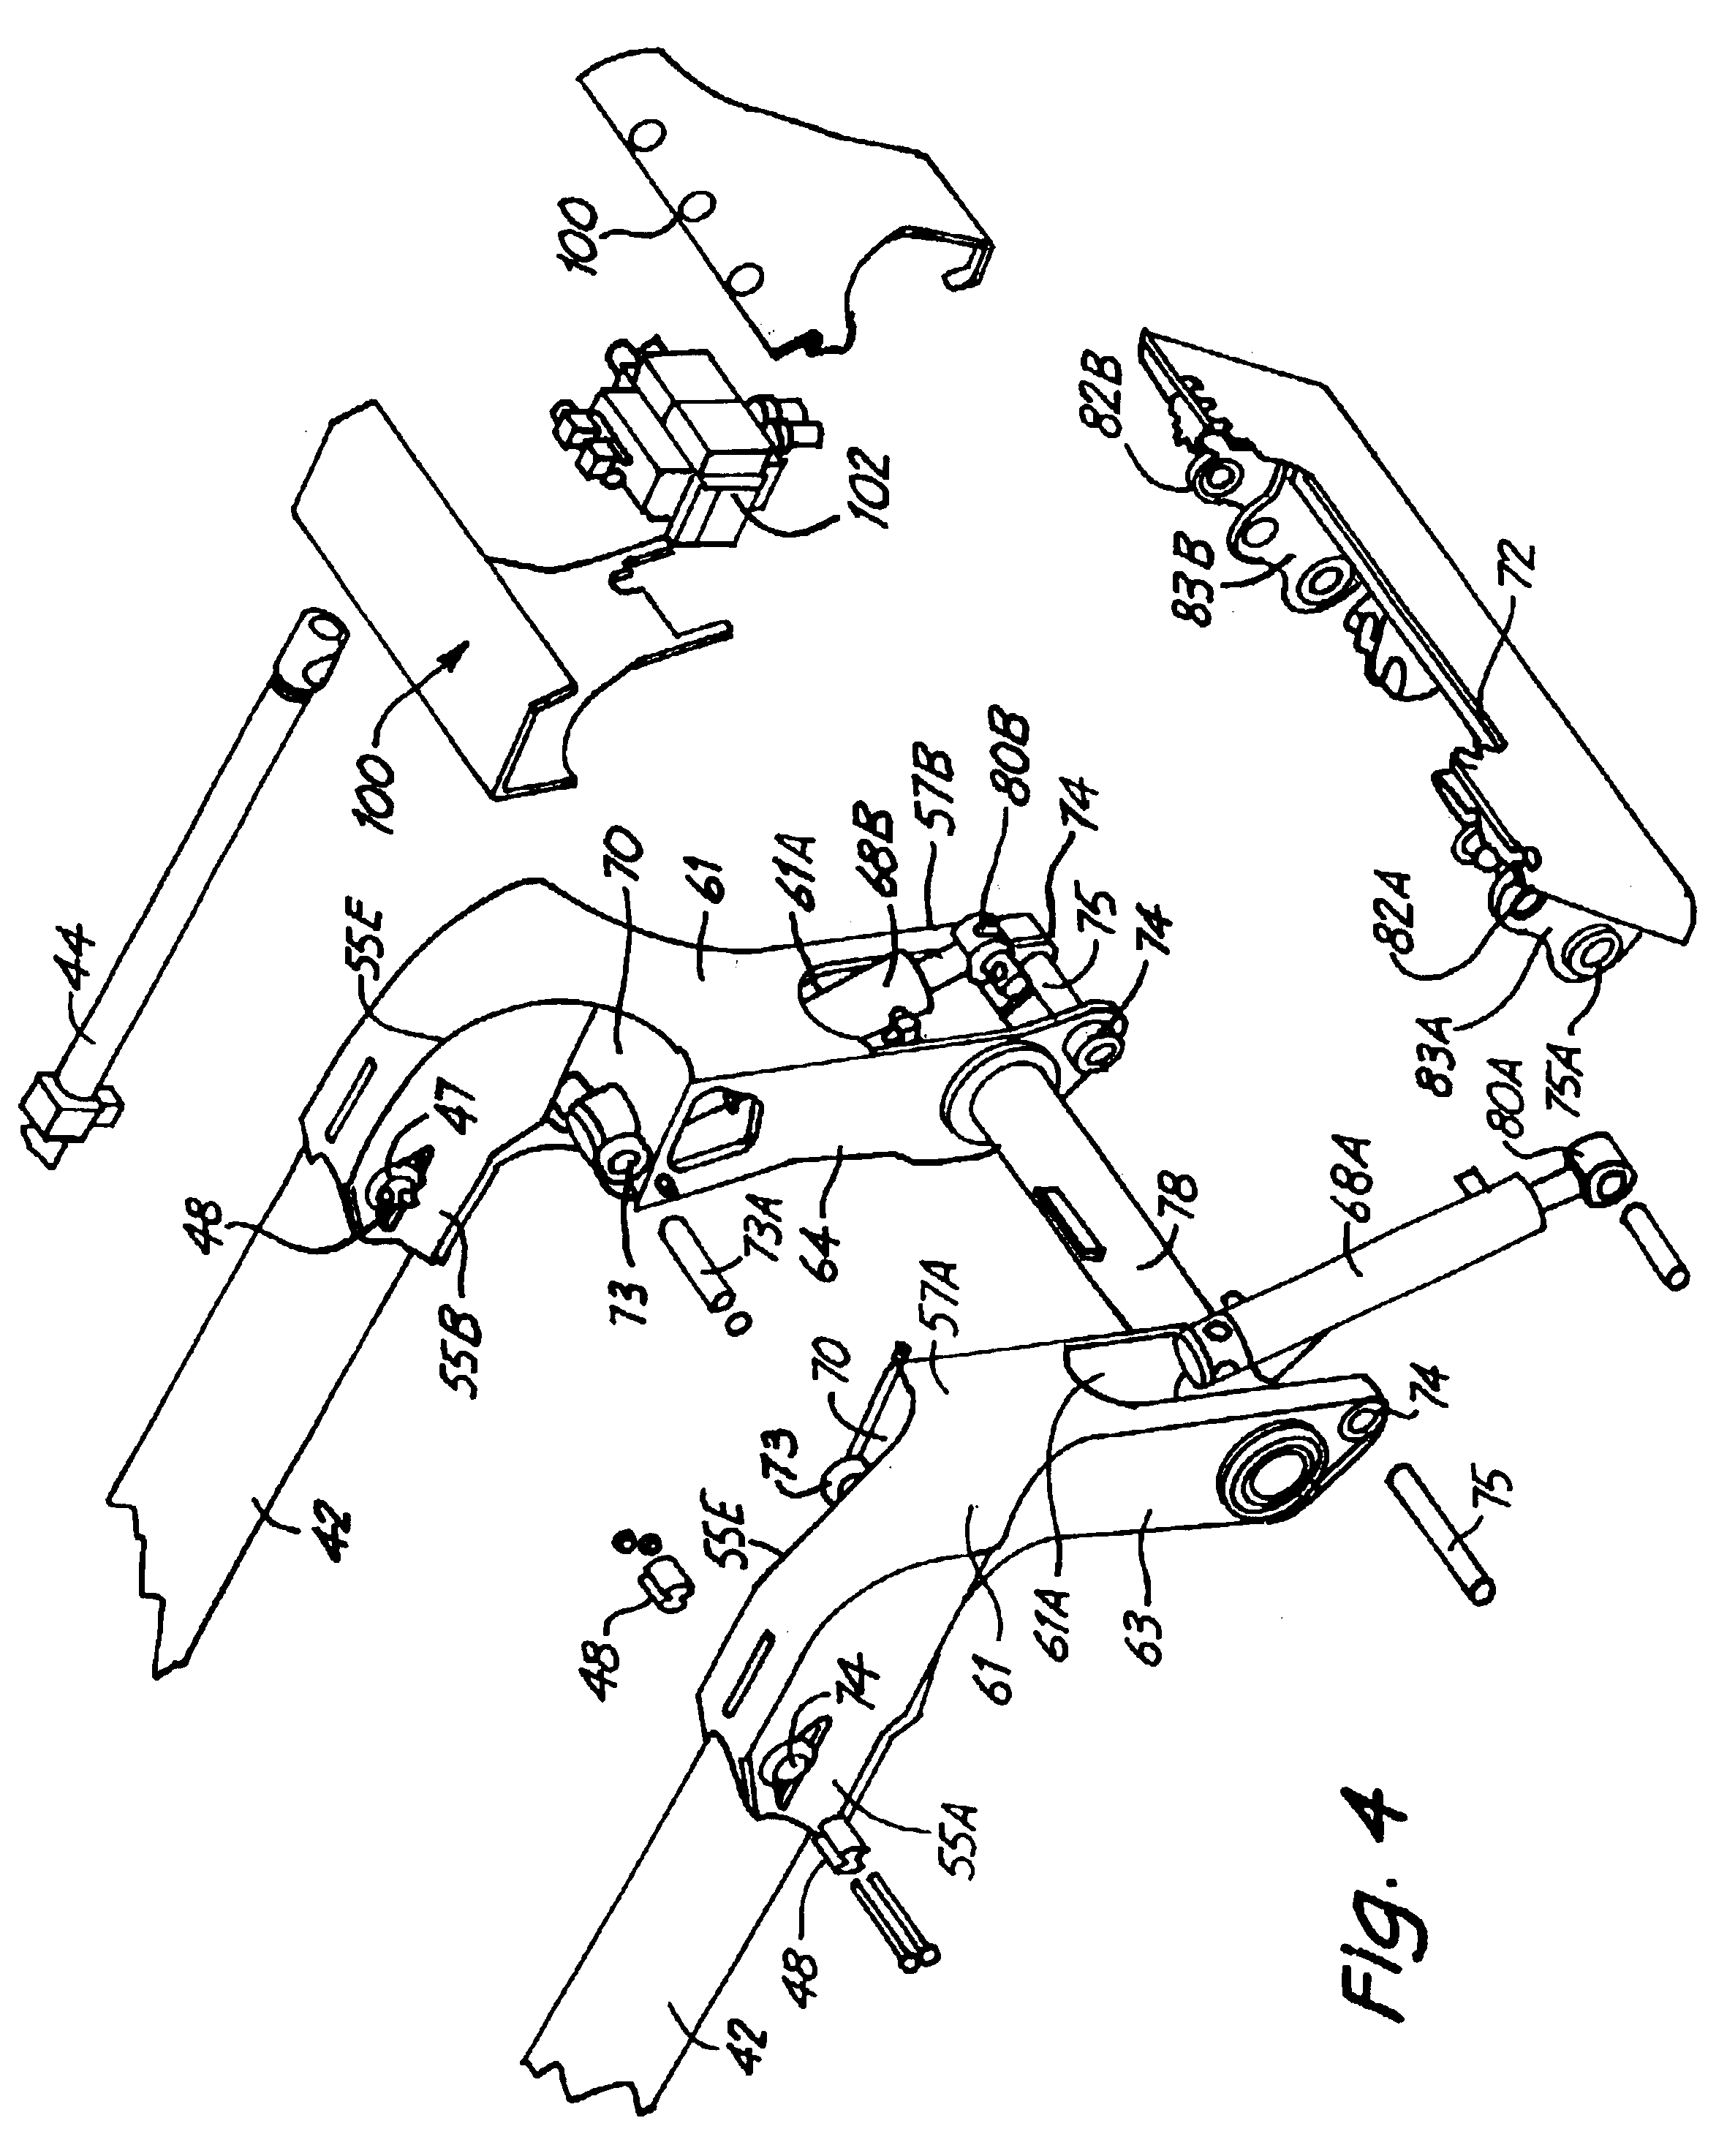 Drawing Arm Lifts : Patent us support frame structure for loader lift